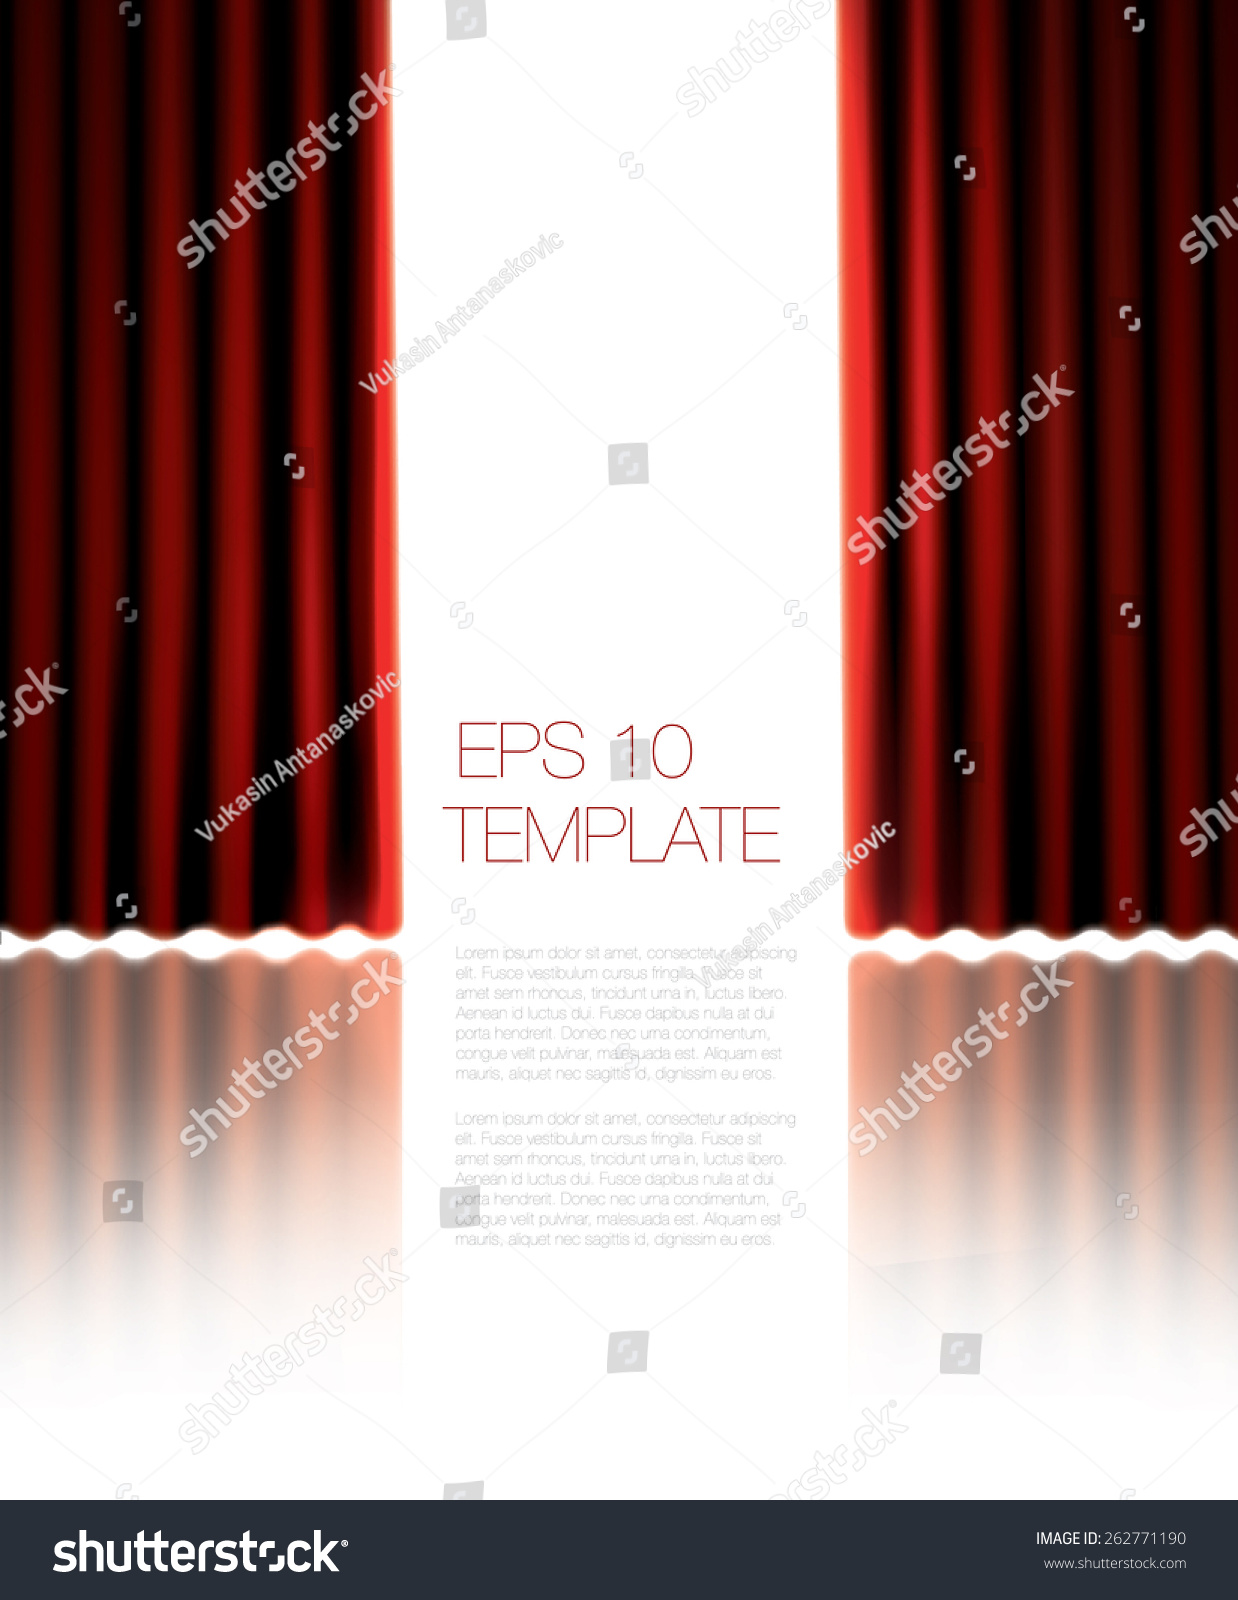 Bright Red Curtains On White Bacground Vector Template